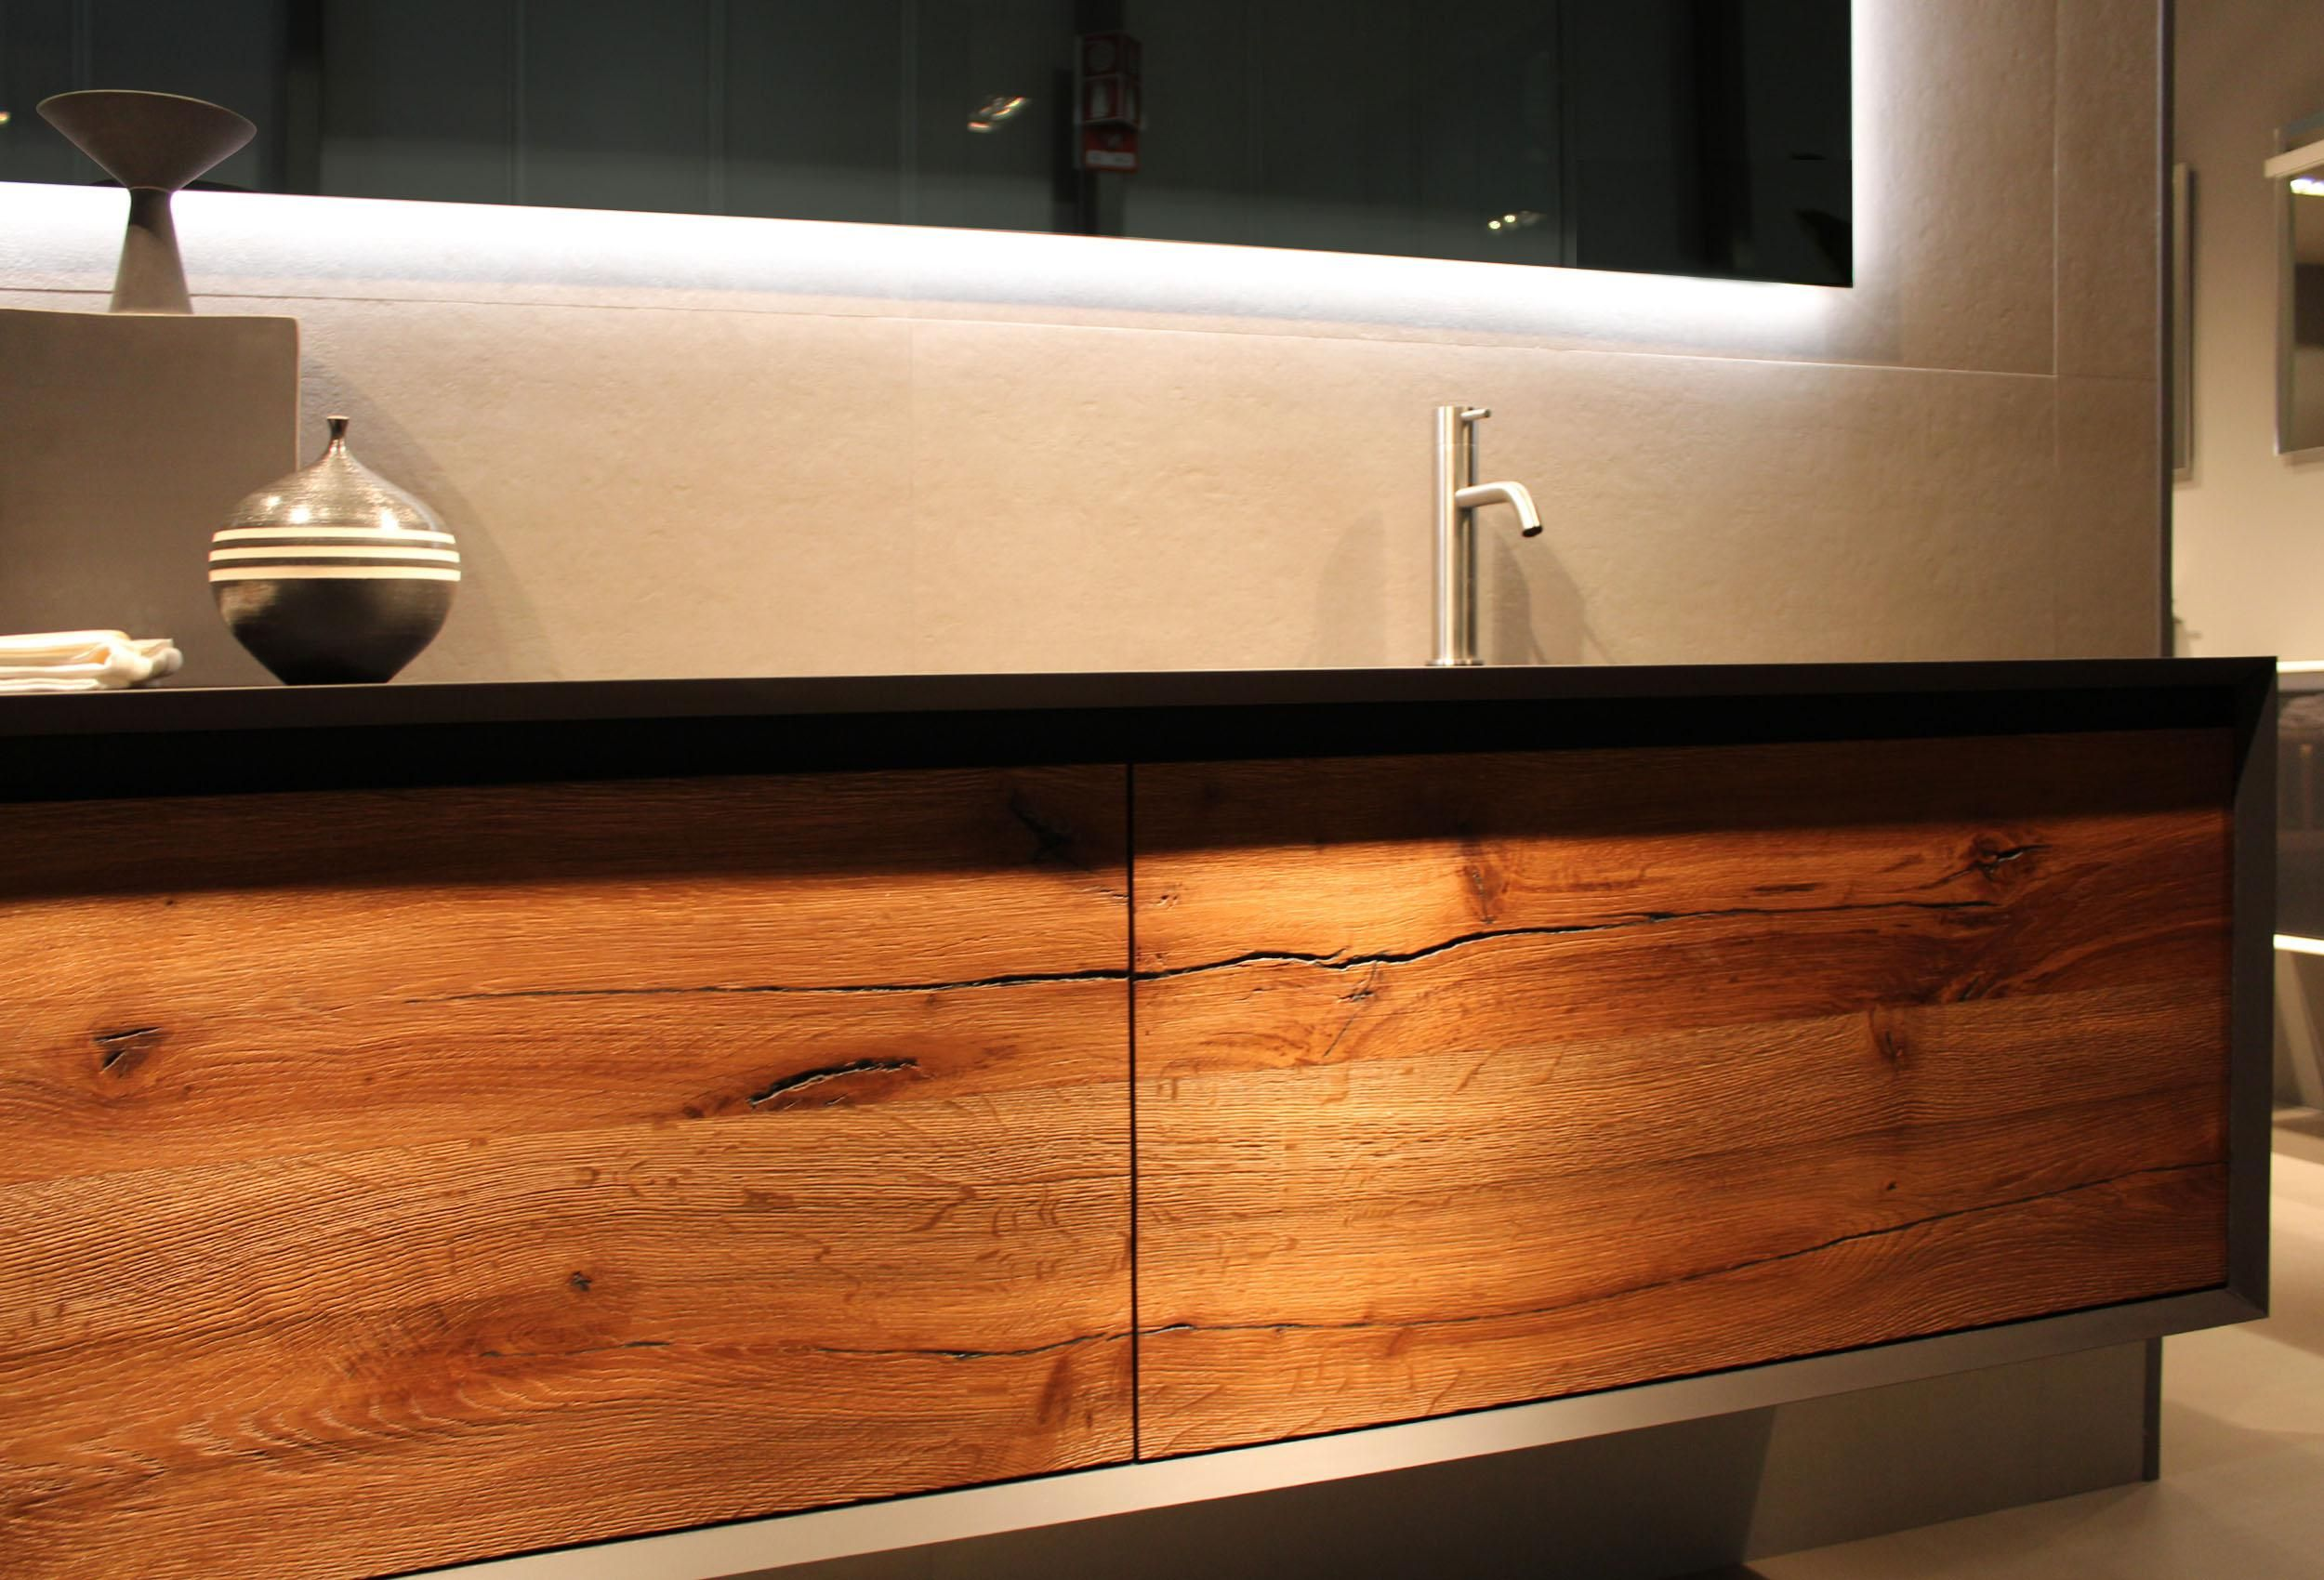 pin by alain on stocco | pinterest - Stocco Arredo Bagno Outlet